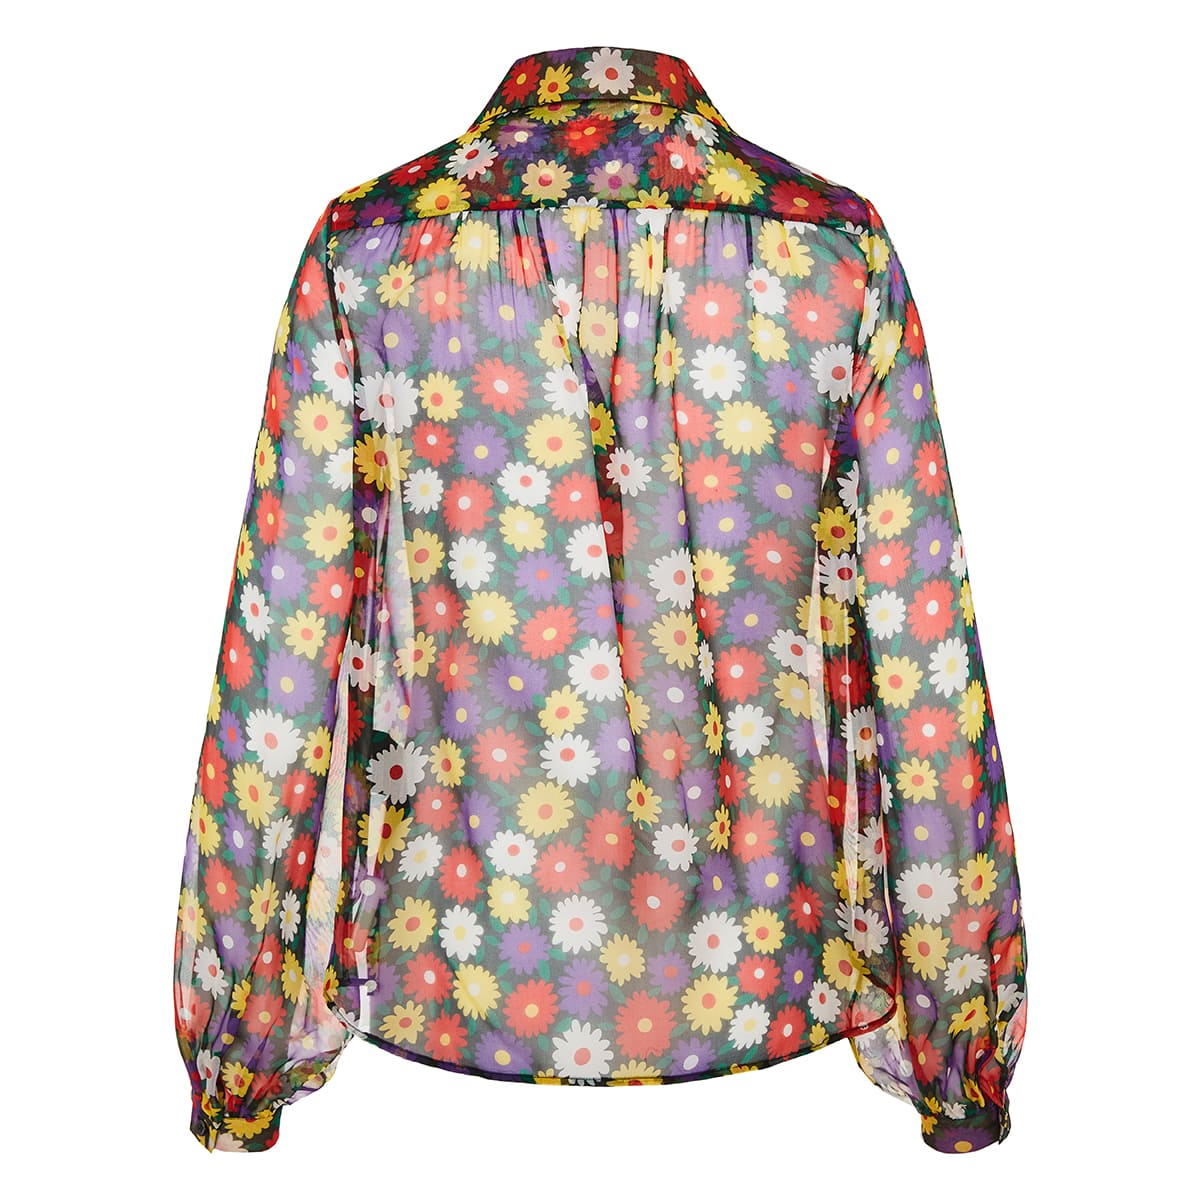 Floral sheer silk shirt